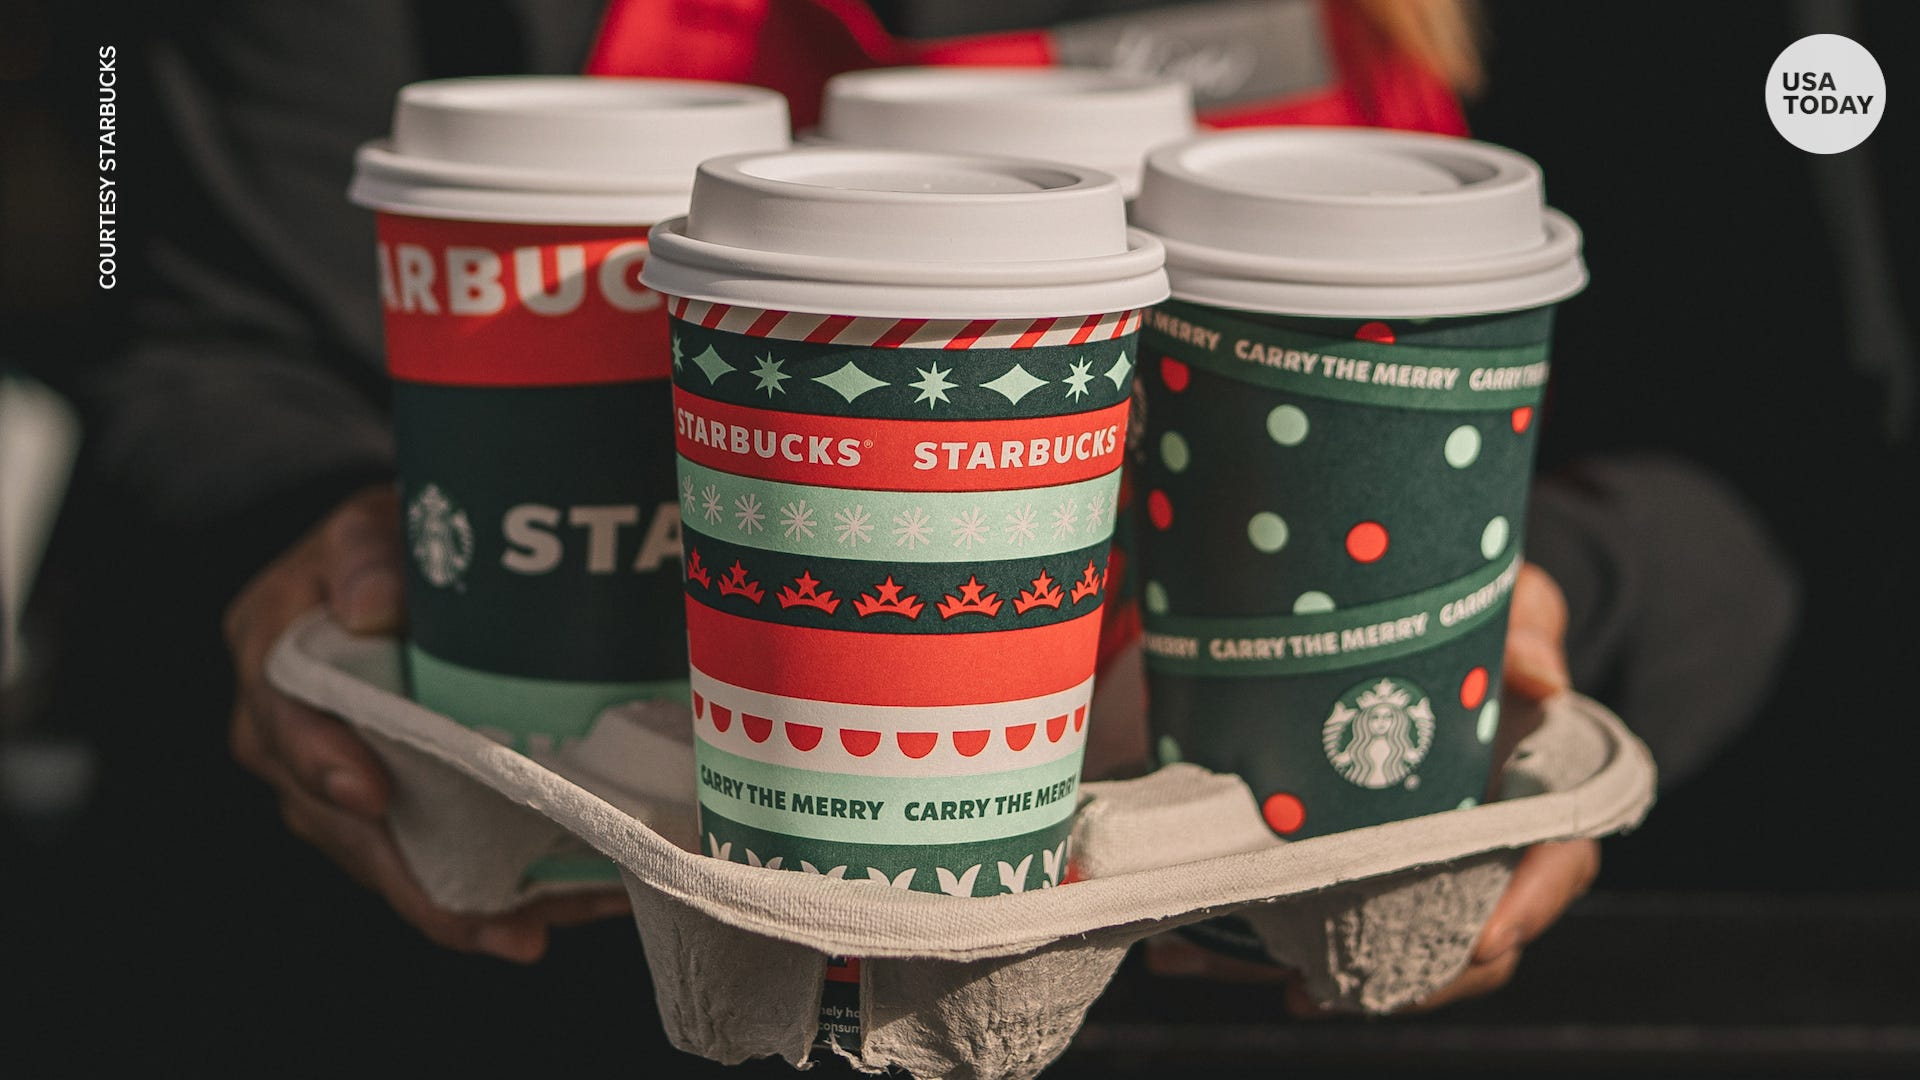 Starbucks Cyber Monday 2020: Buy a $20 gift card online, get free $3 eGift card. Plus, how to get a free drink.